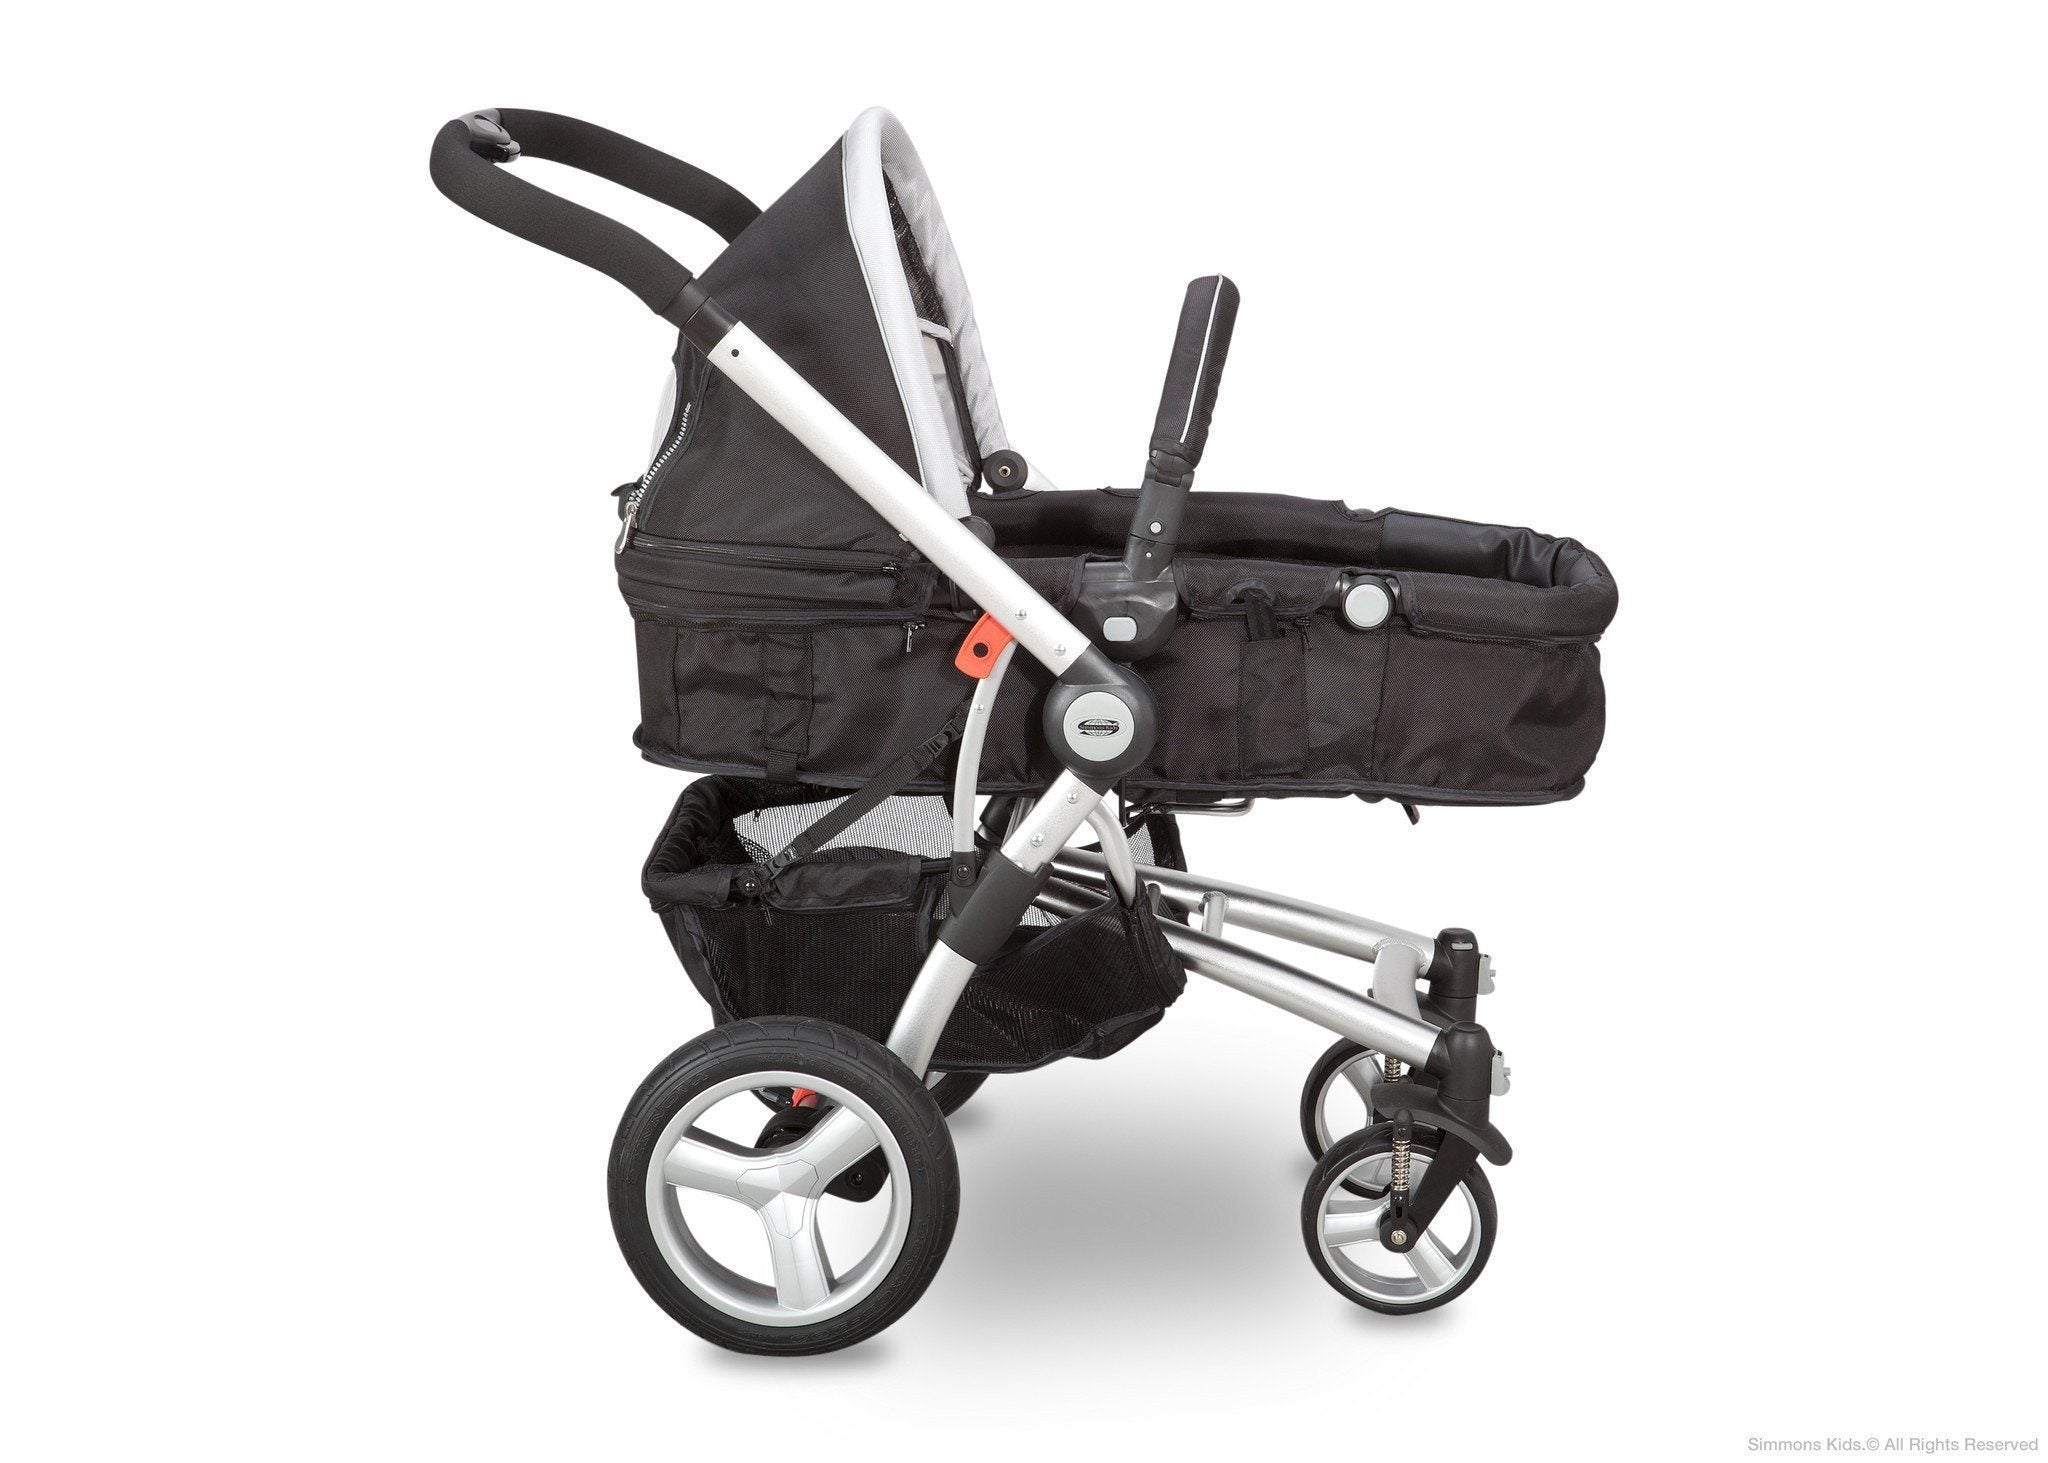 Simmons Kids Black with Silver Trim (014) Comfort Tech Tour Buggy Stroller, Baby Carriage Option b3b